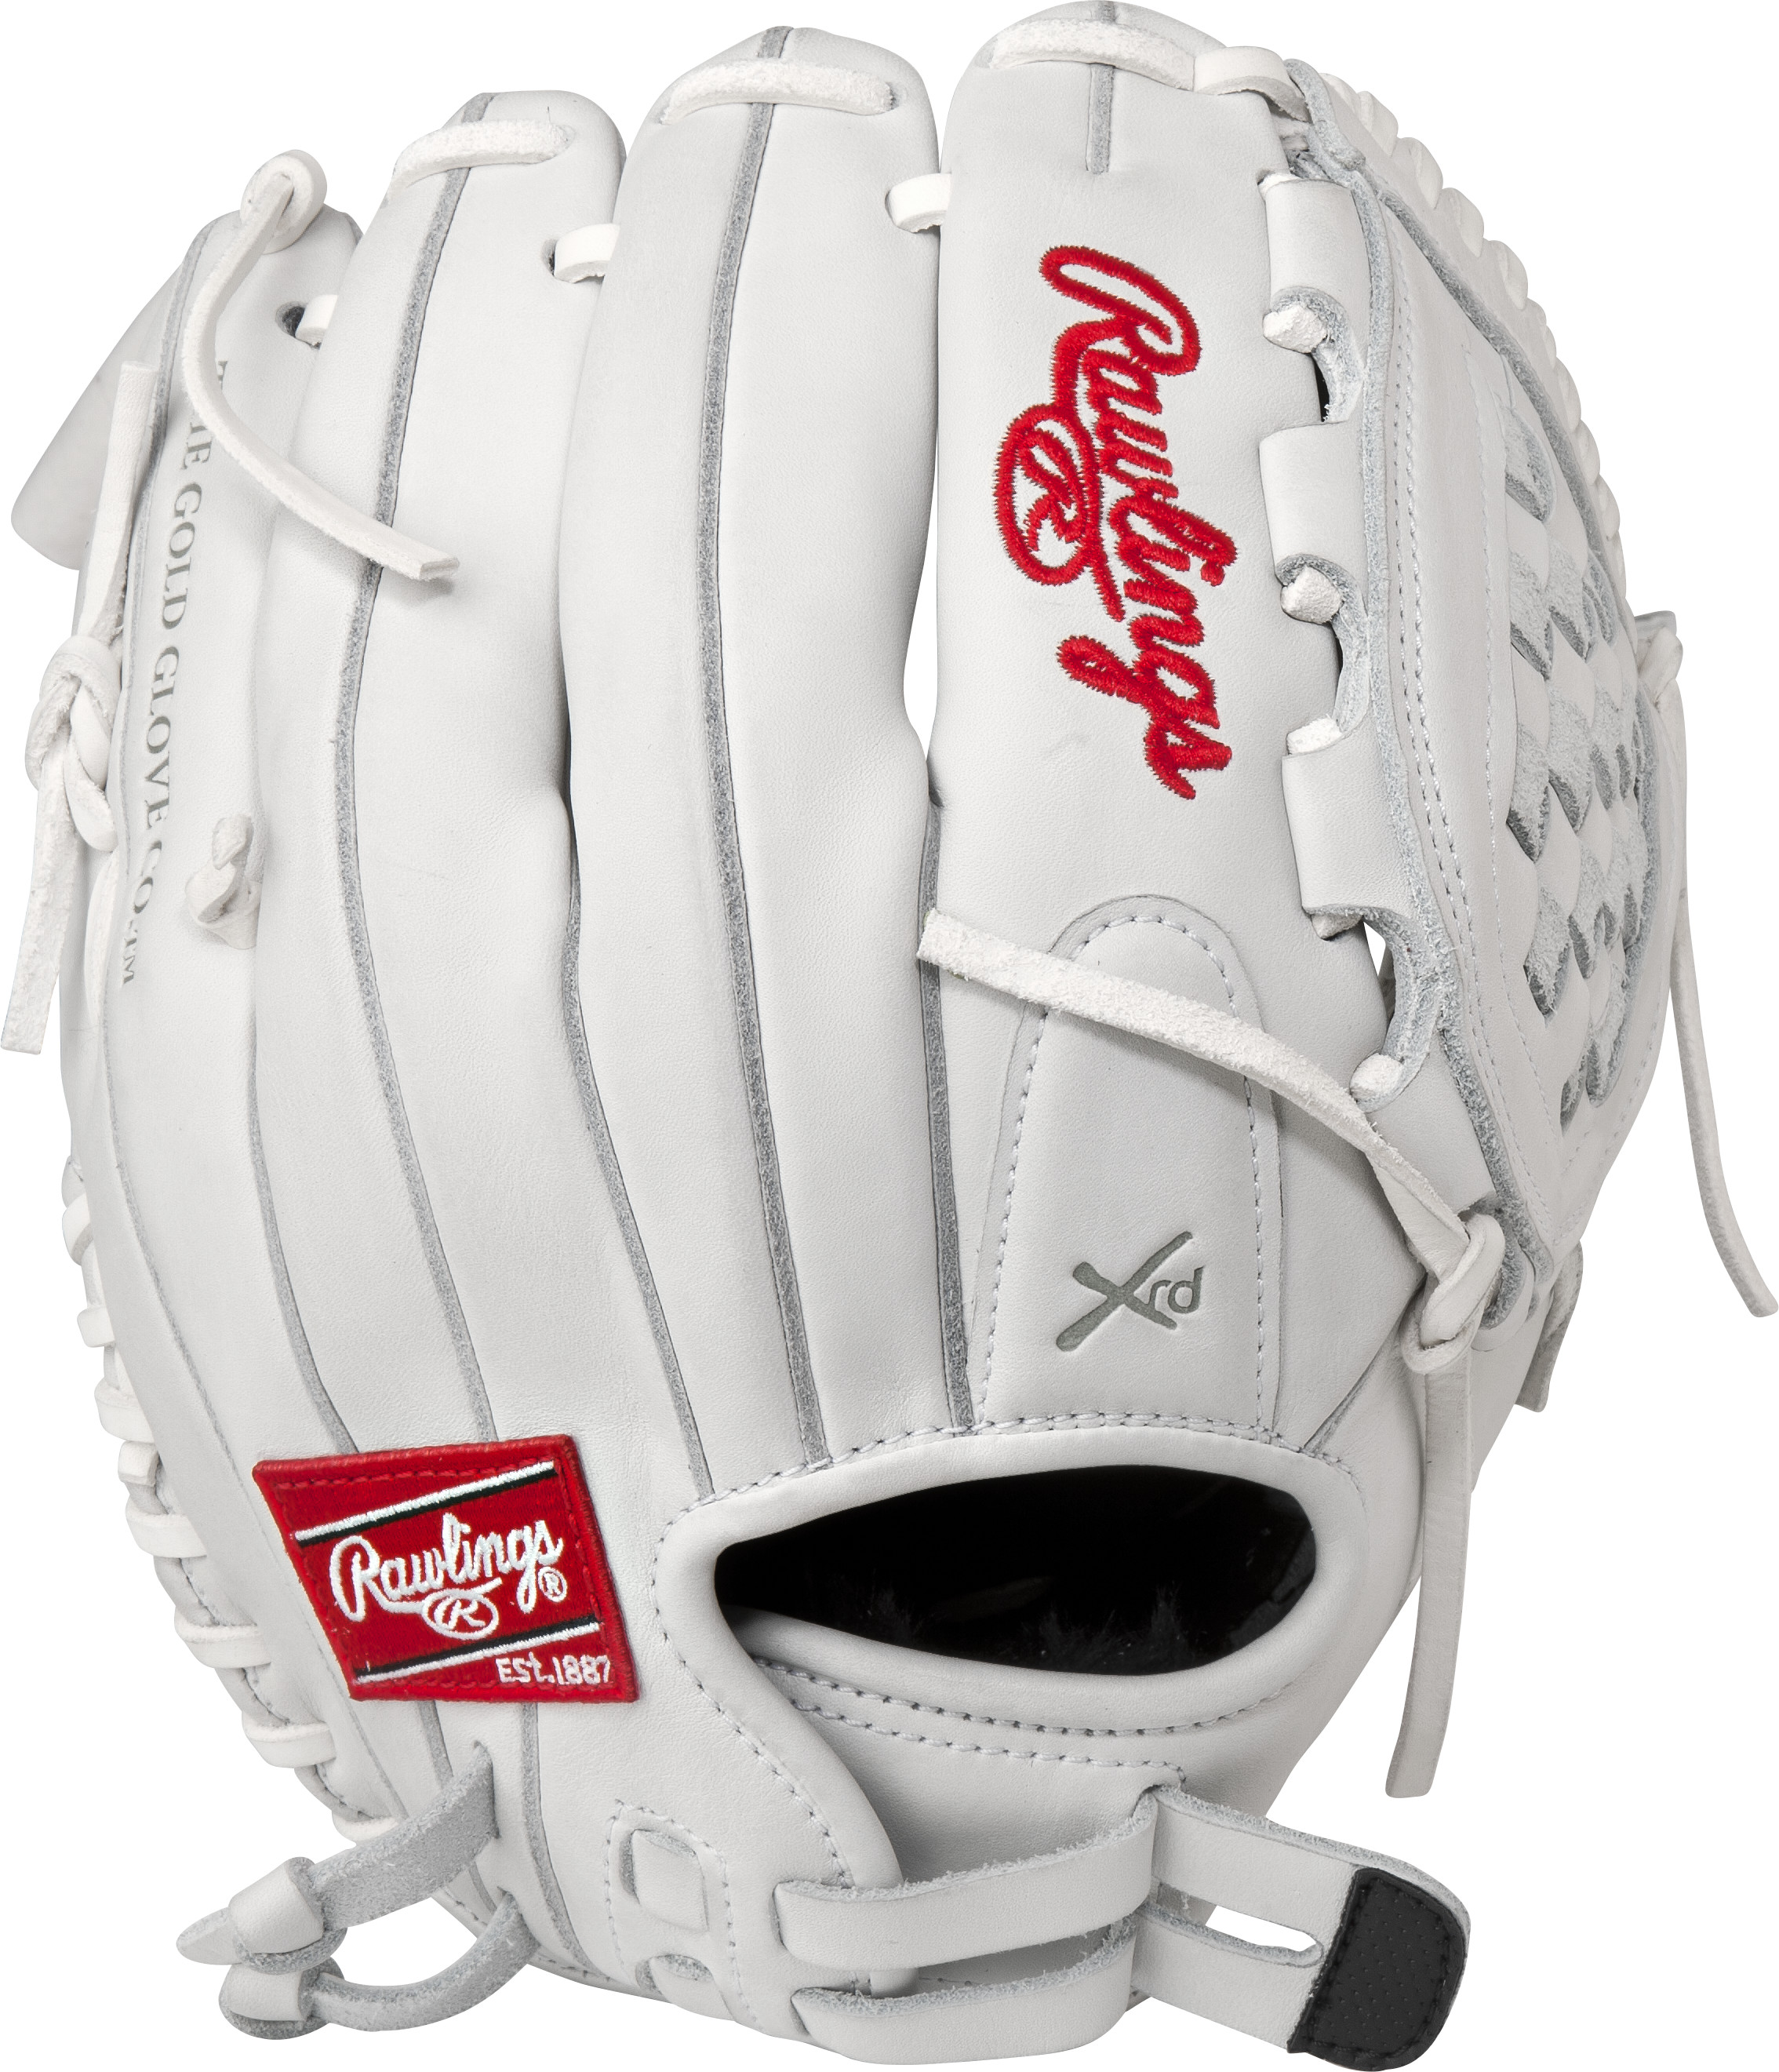 http://www.bestbatdeals.com/images/gloves/rawlings/RLA120_back.jpg